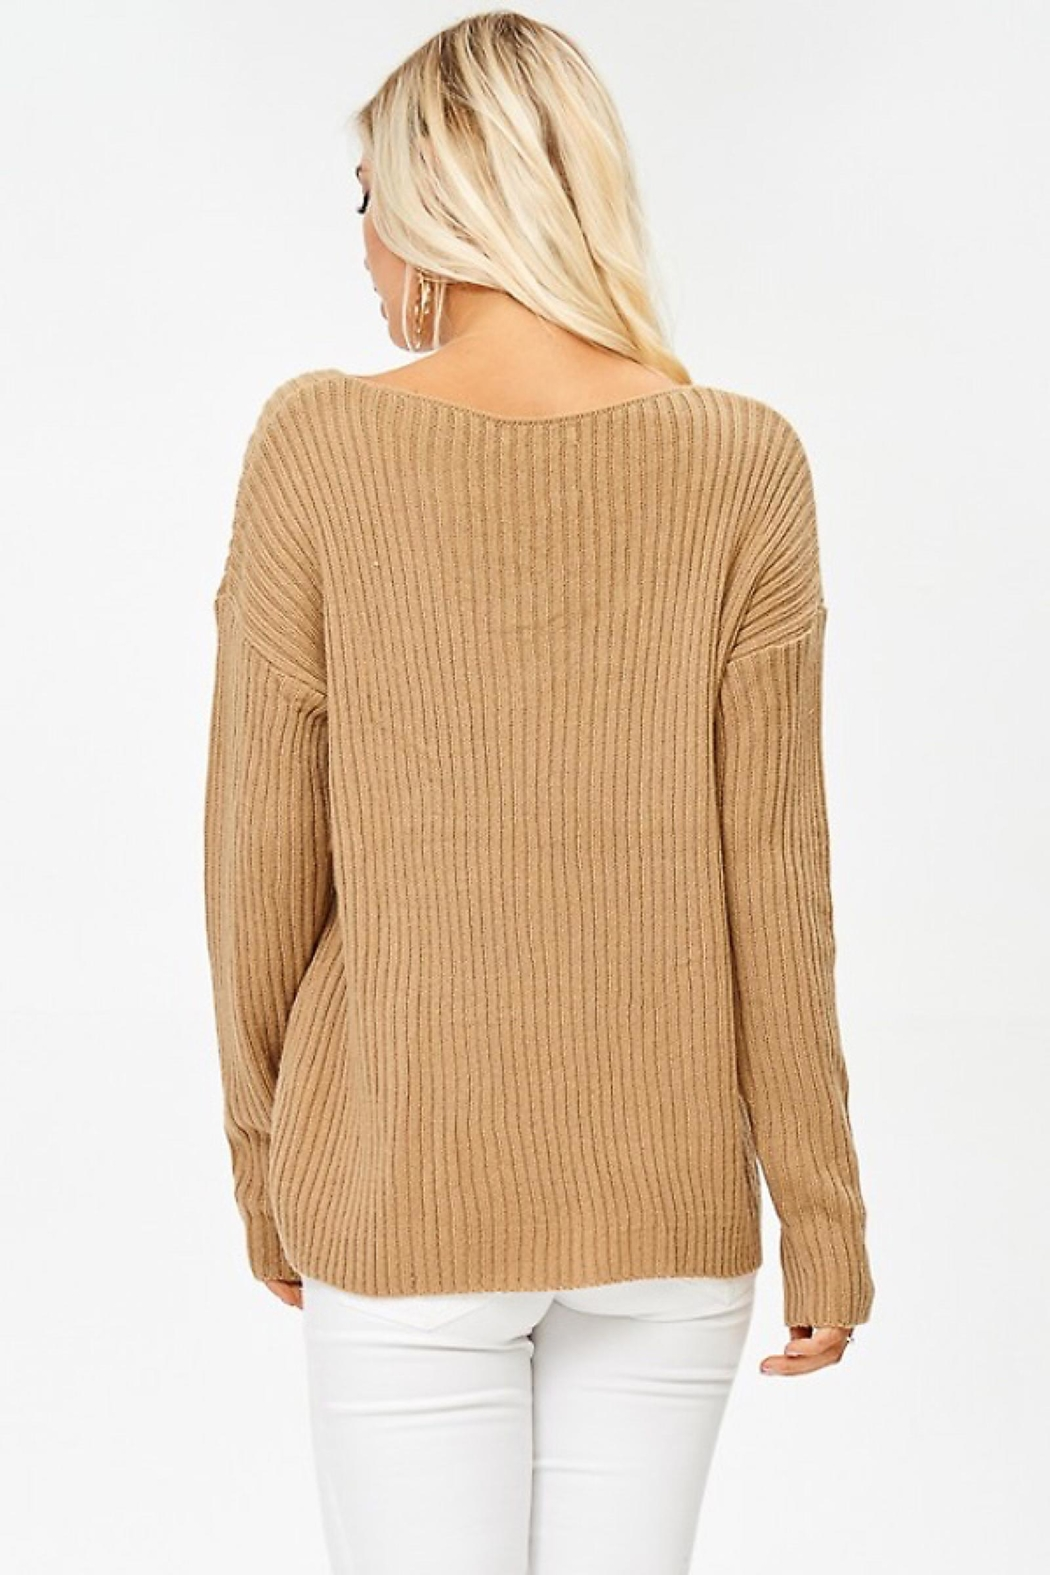 People Outfitter Caramel Crisscross Ribbed Sweater - Front Full Image